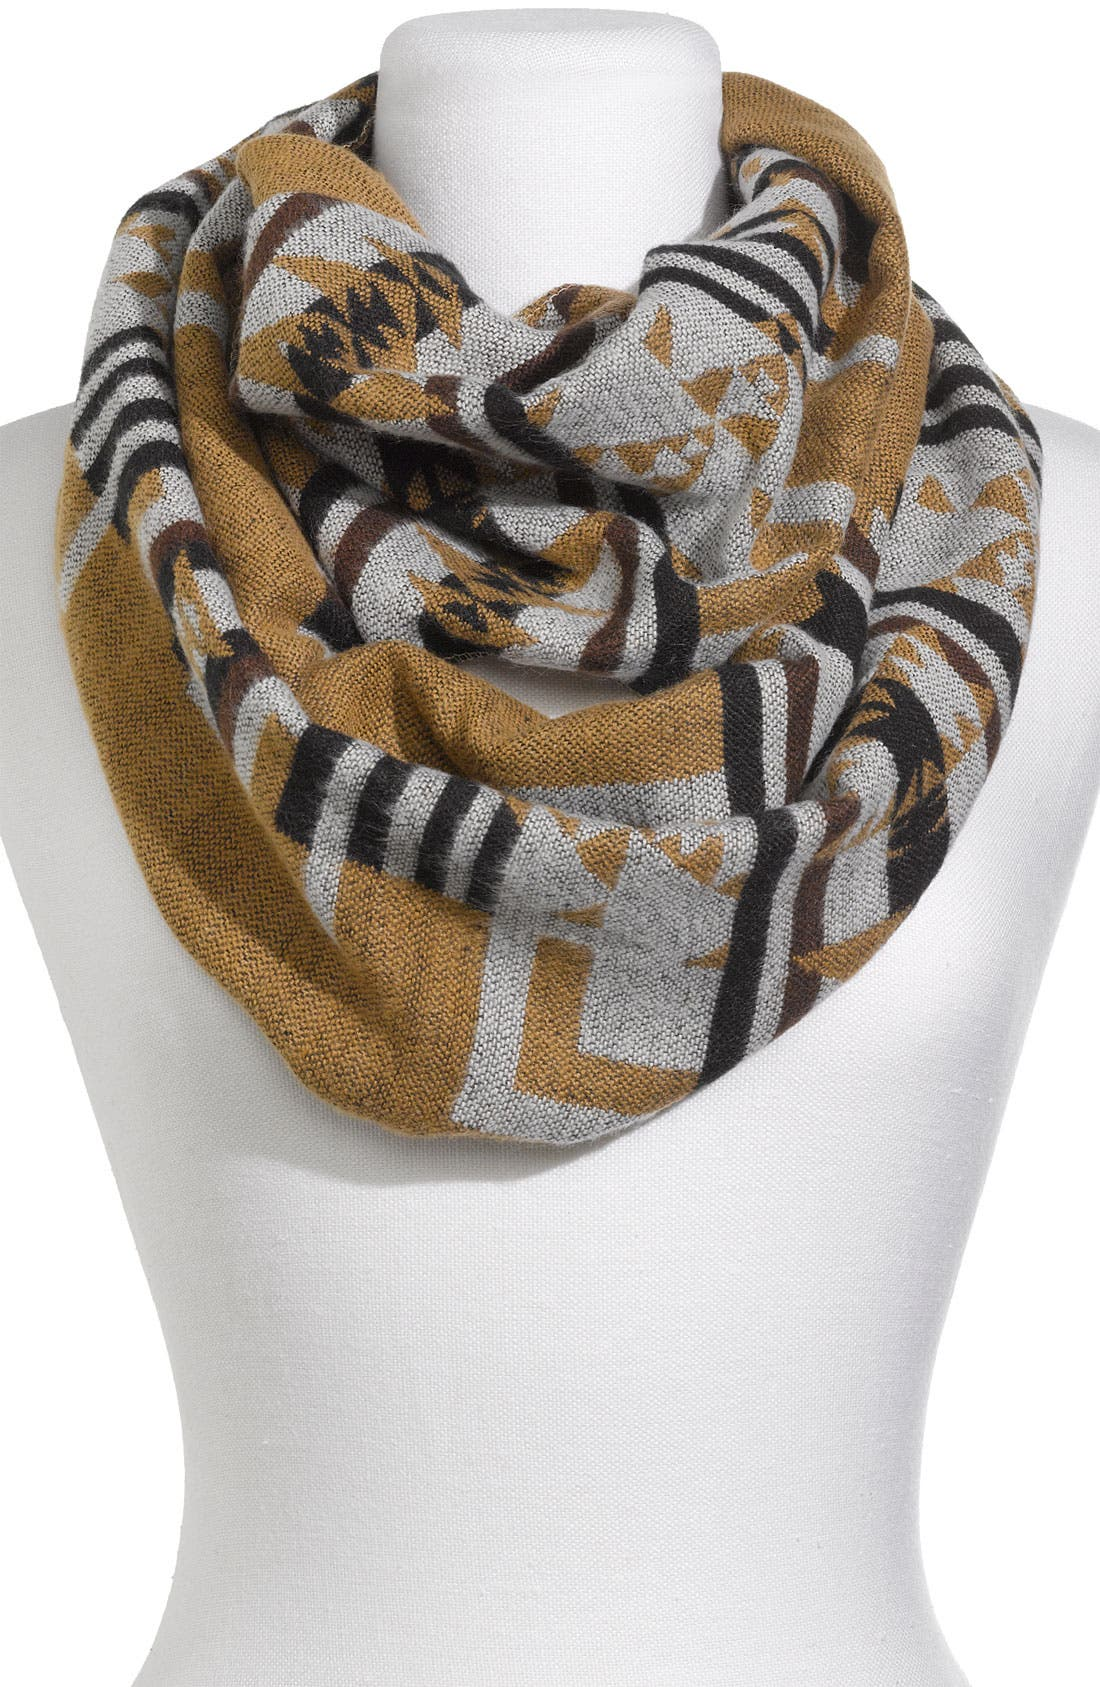 Alternate Image 1 Selected - The Accessory Collective 'Saddle Blanket' Infinity Scarf